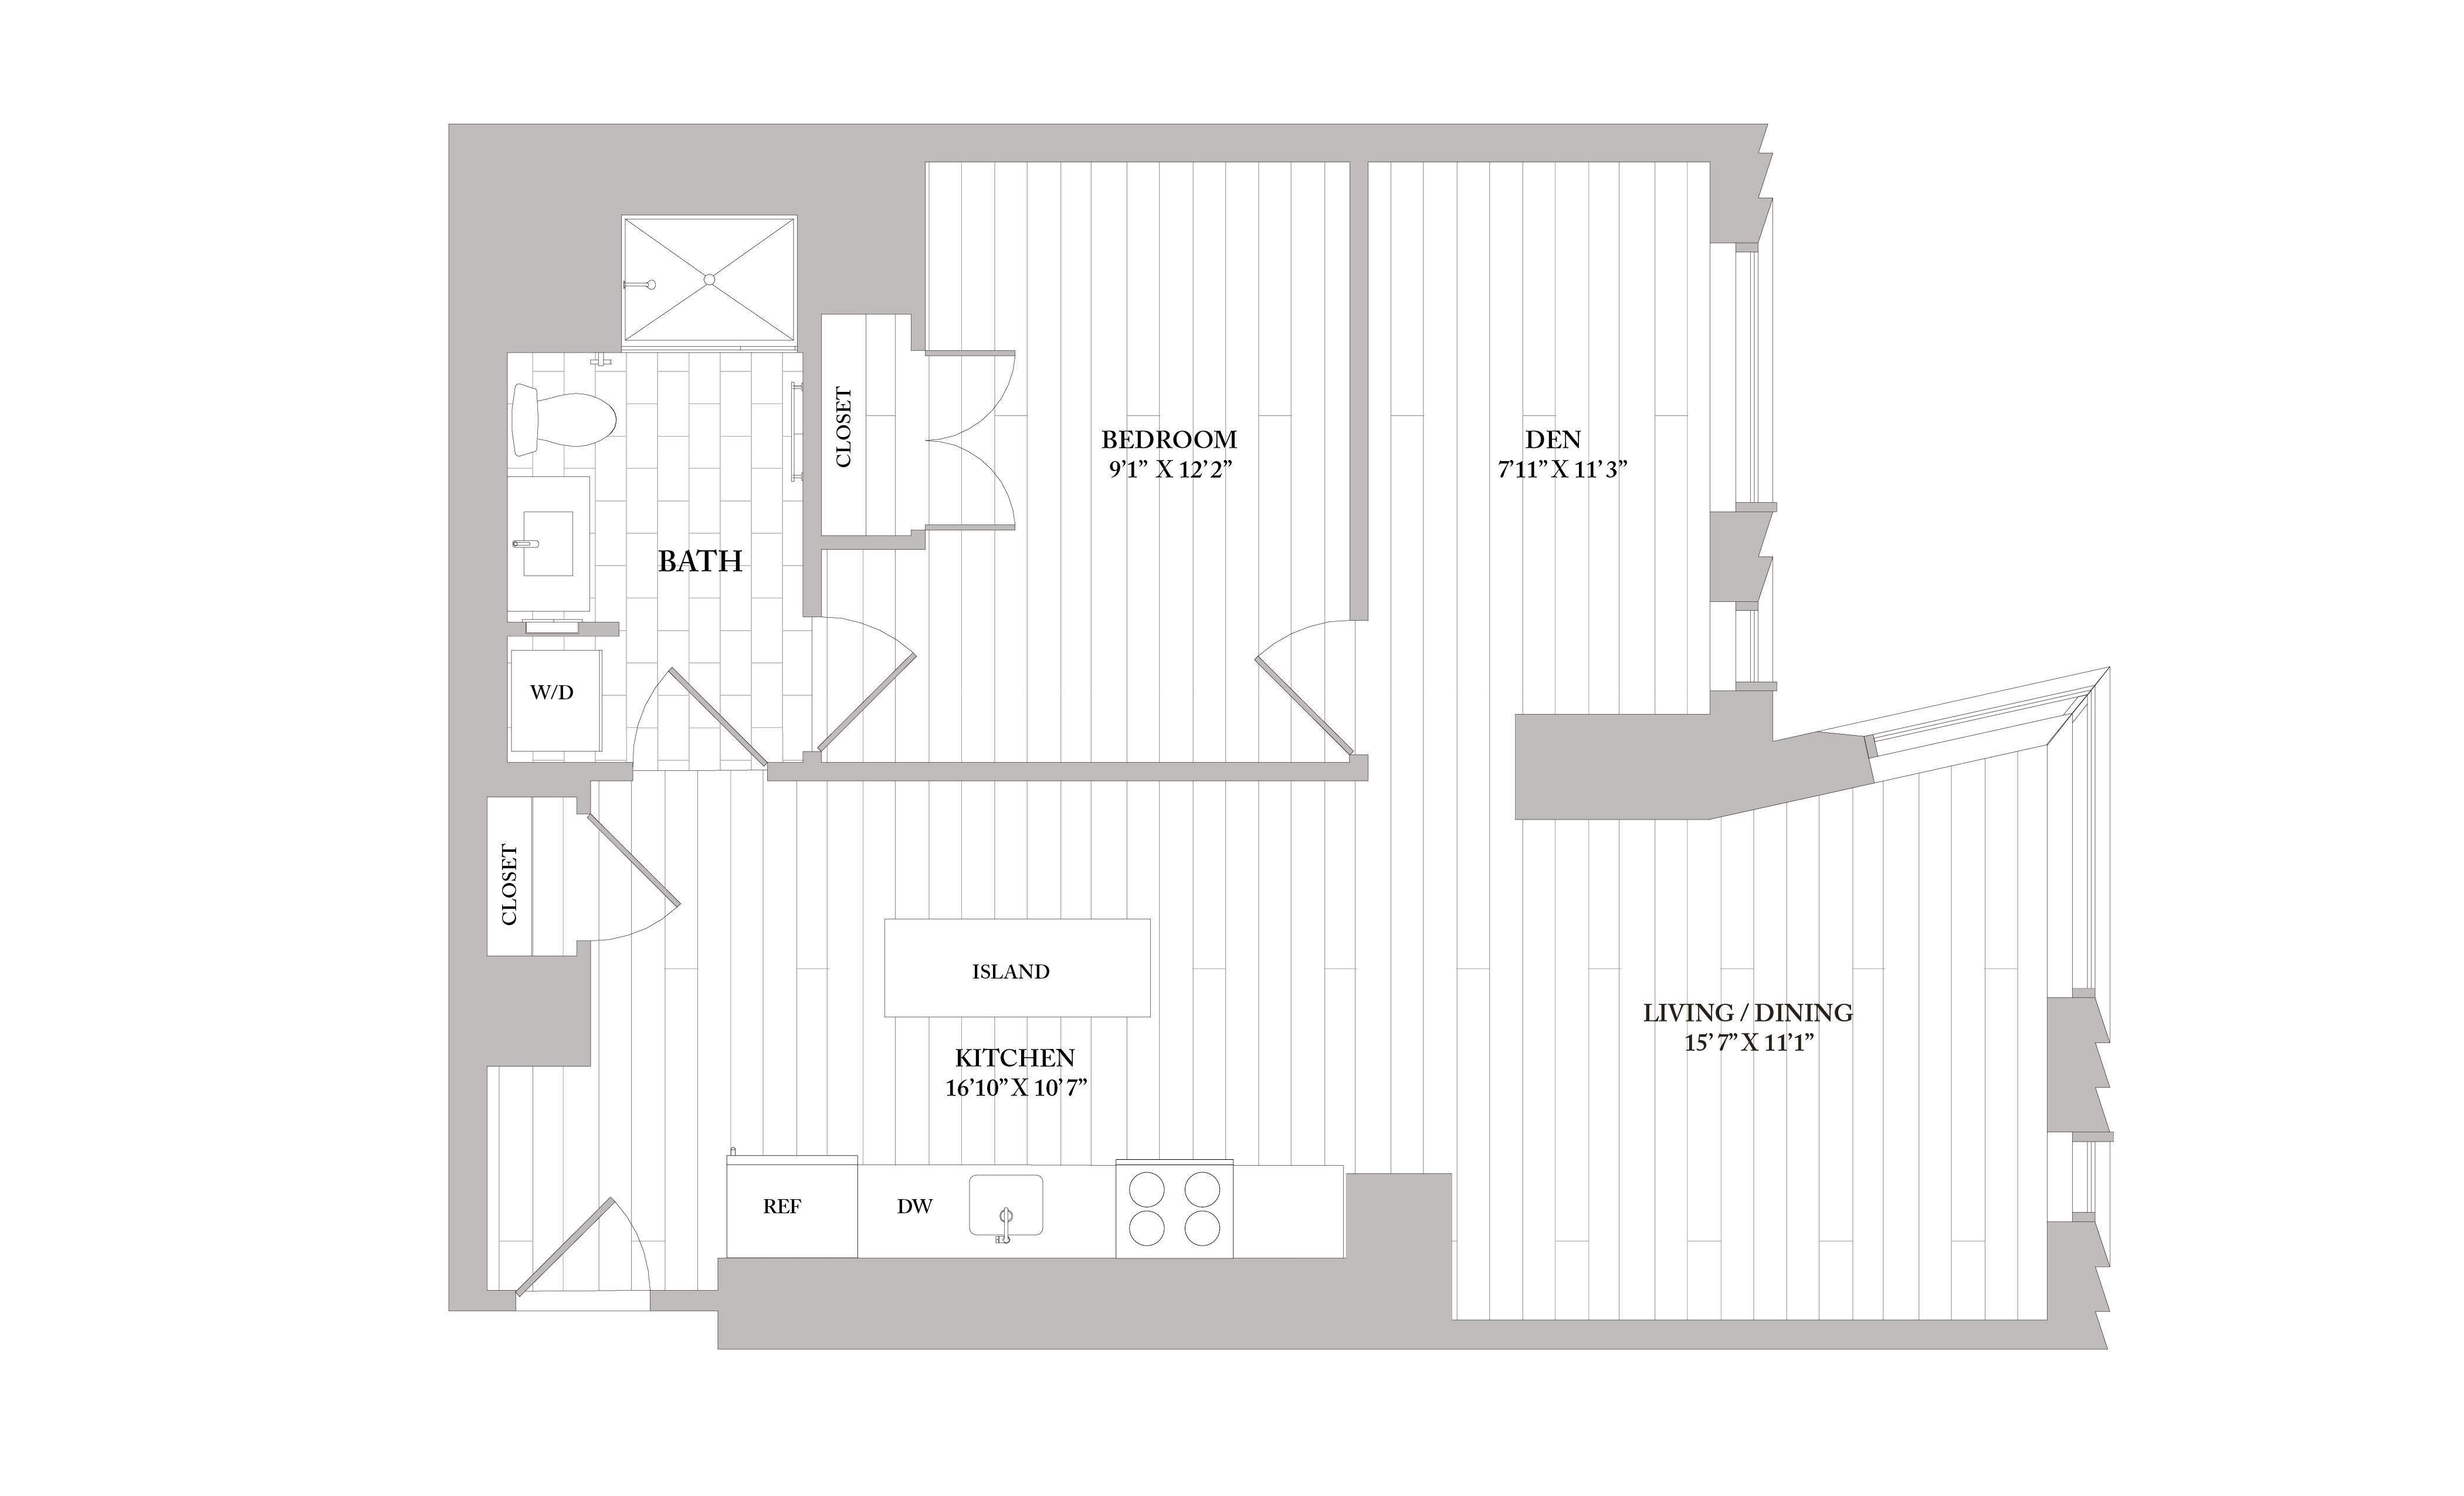 Apartment 1201 floorplan